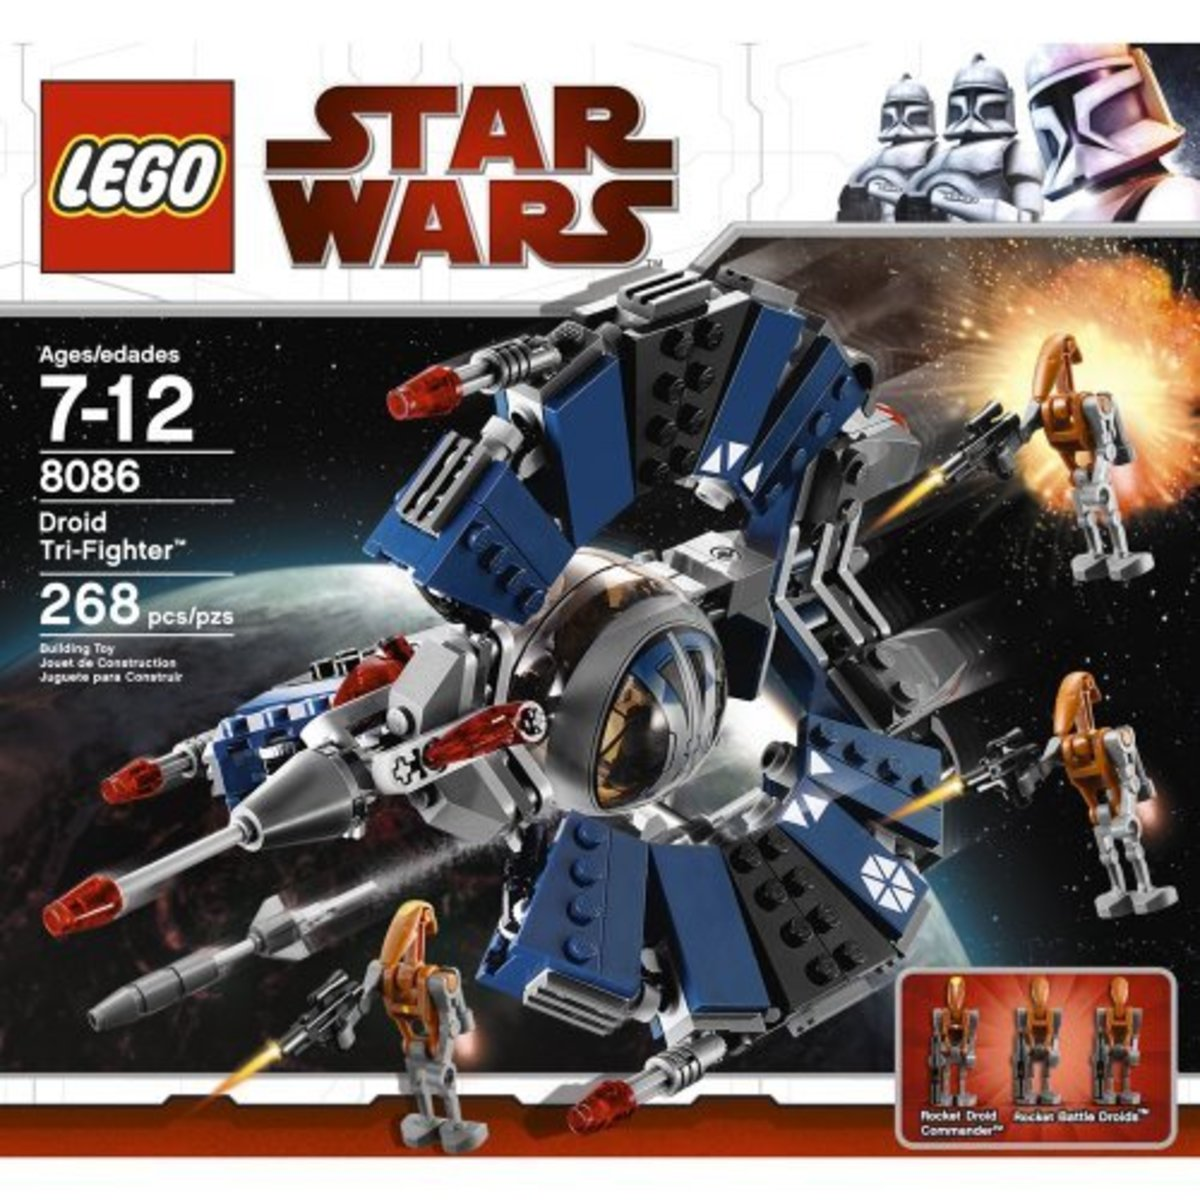 LEGO Star Wars Droid Tri-Fighter 8086 Box